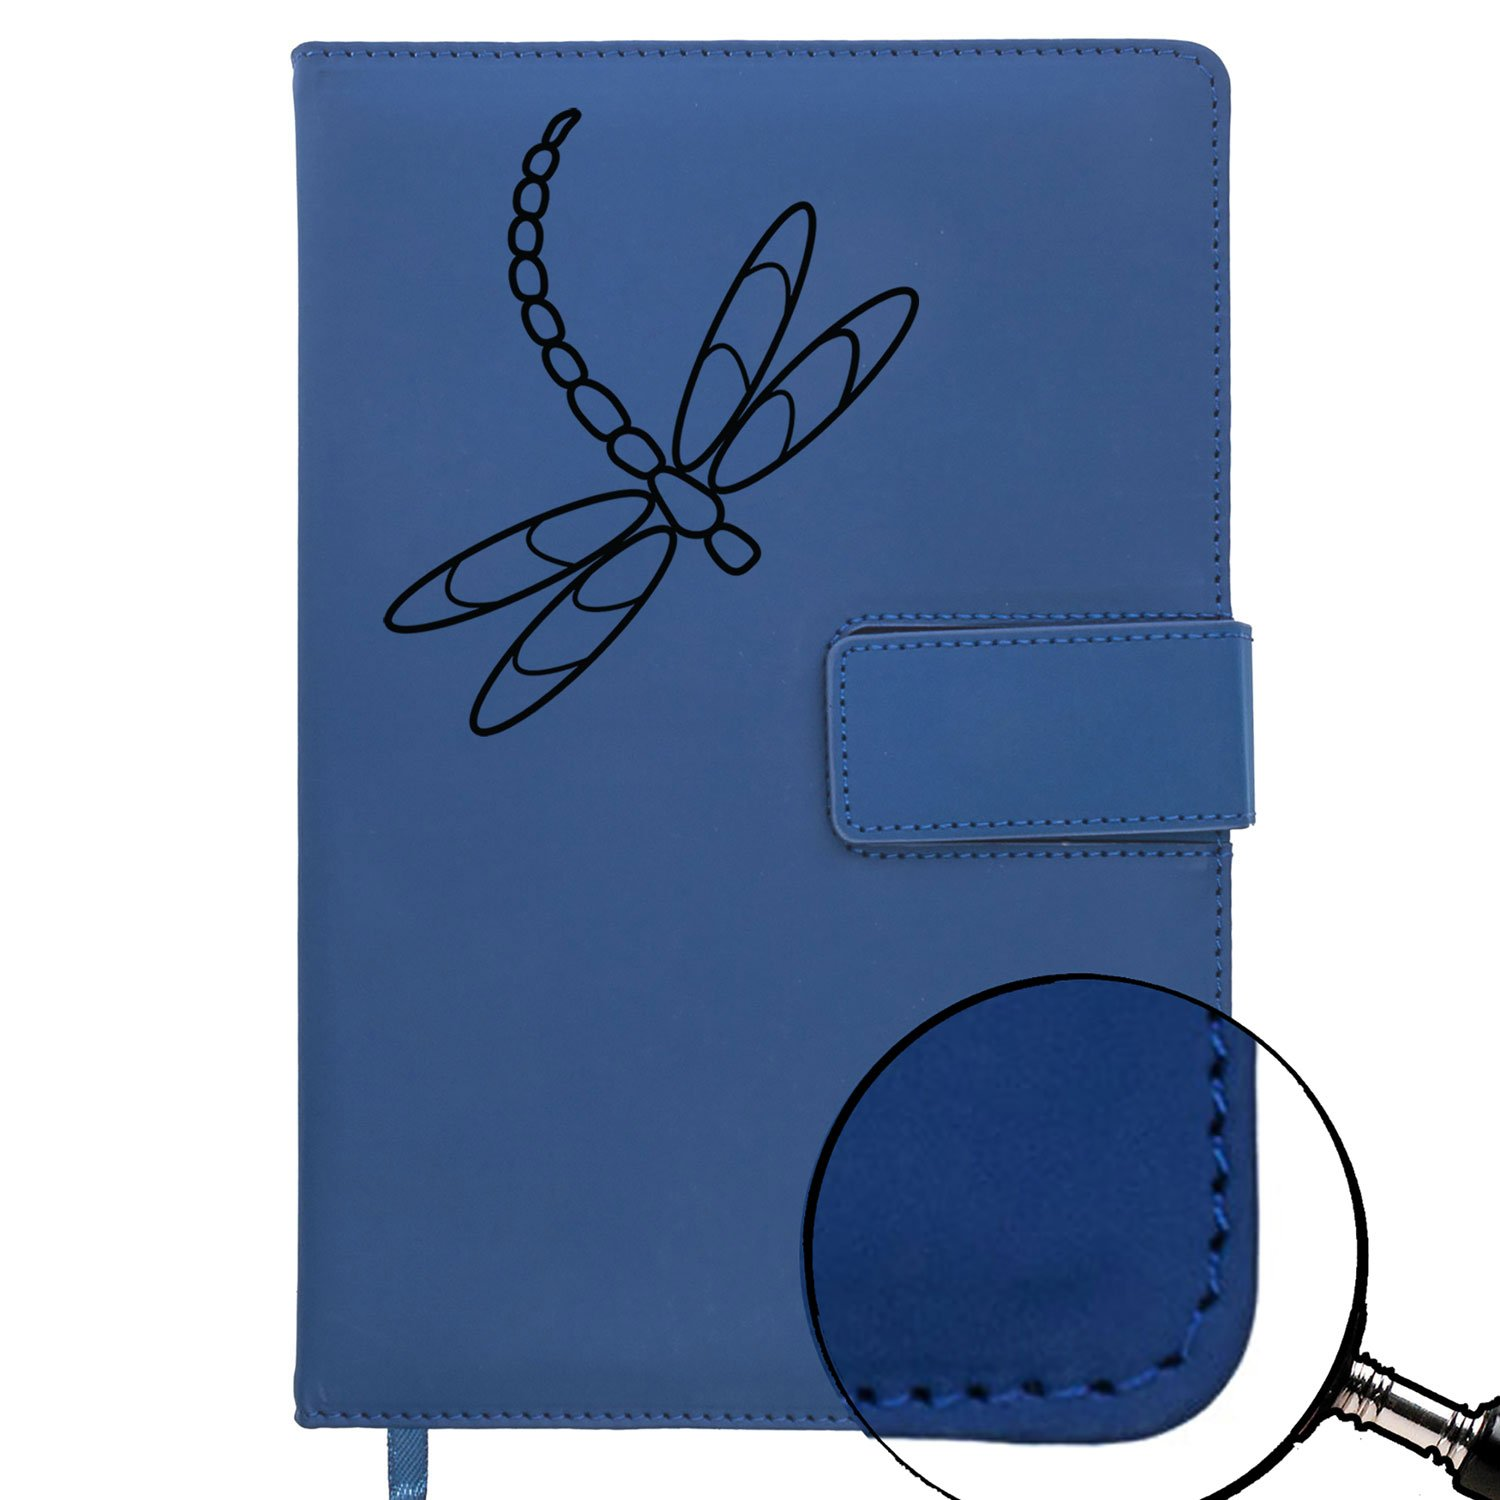 The Dragonfly Refillable Writing Journal | Faux Leather Cover, Magnetic Clasp + Pen Loop | Blank Notebook | 200 Lined Pages, 5 x 8 Inches for Travel, Personal, Poetry | Blue | The Amazing Office by The Amazing Office (Image #7)